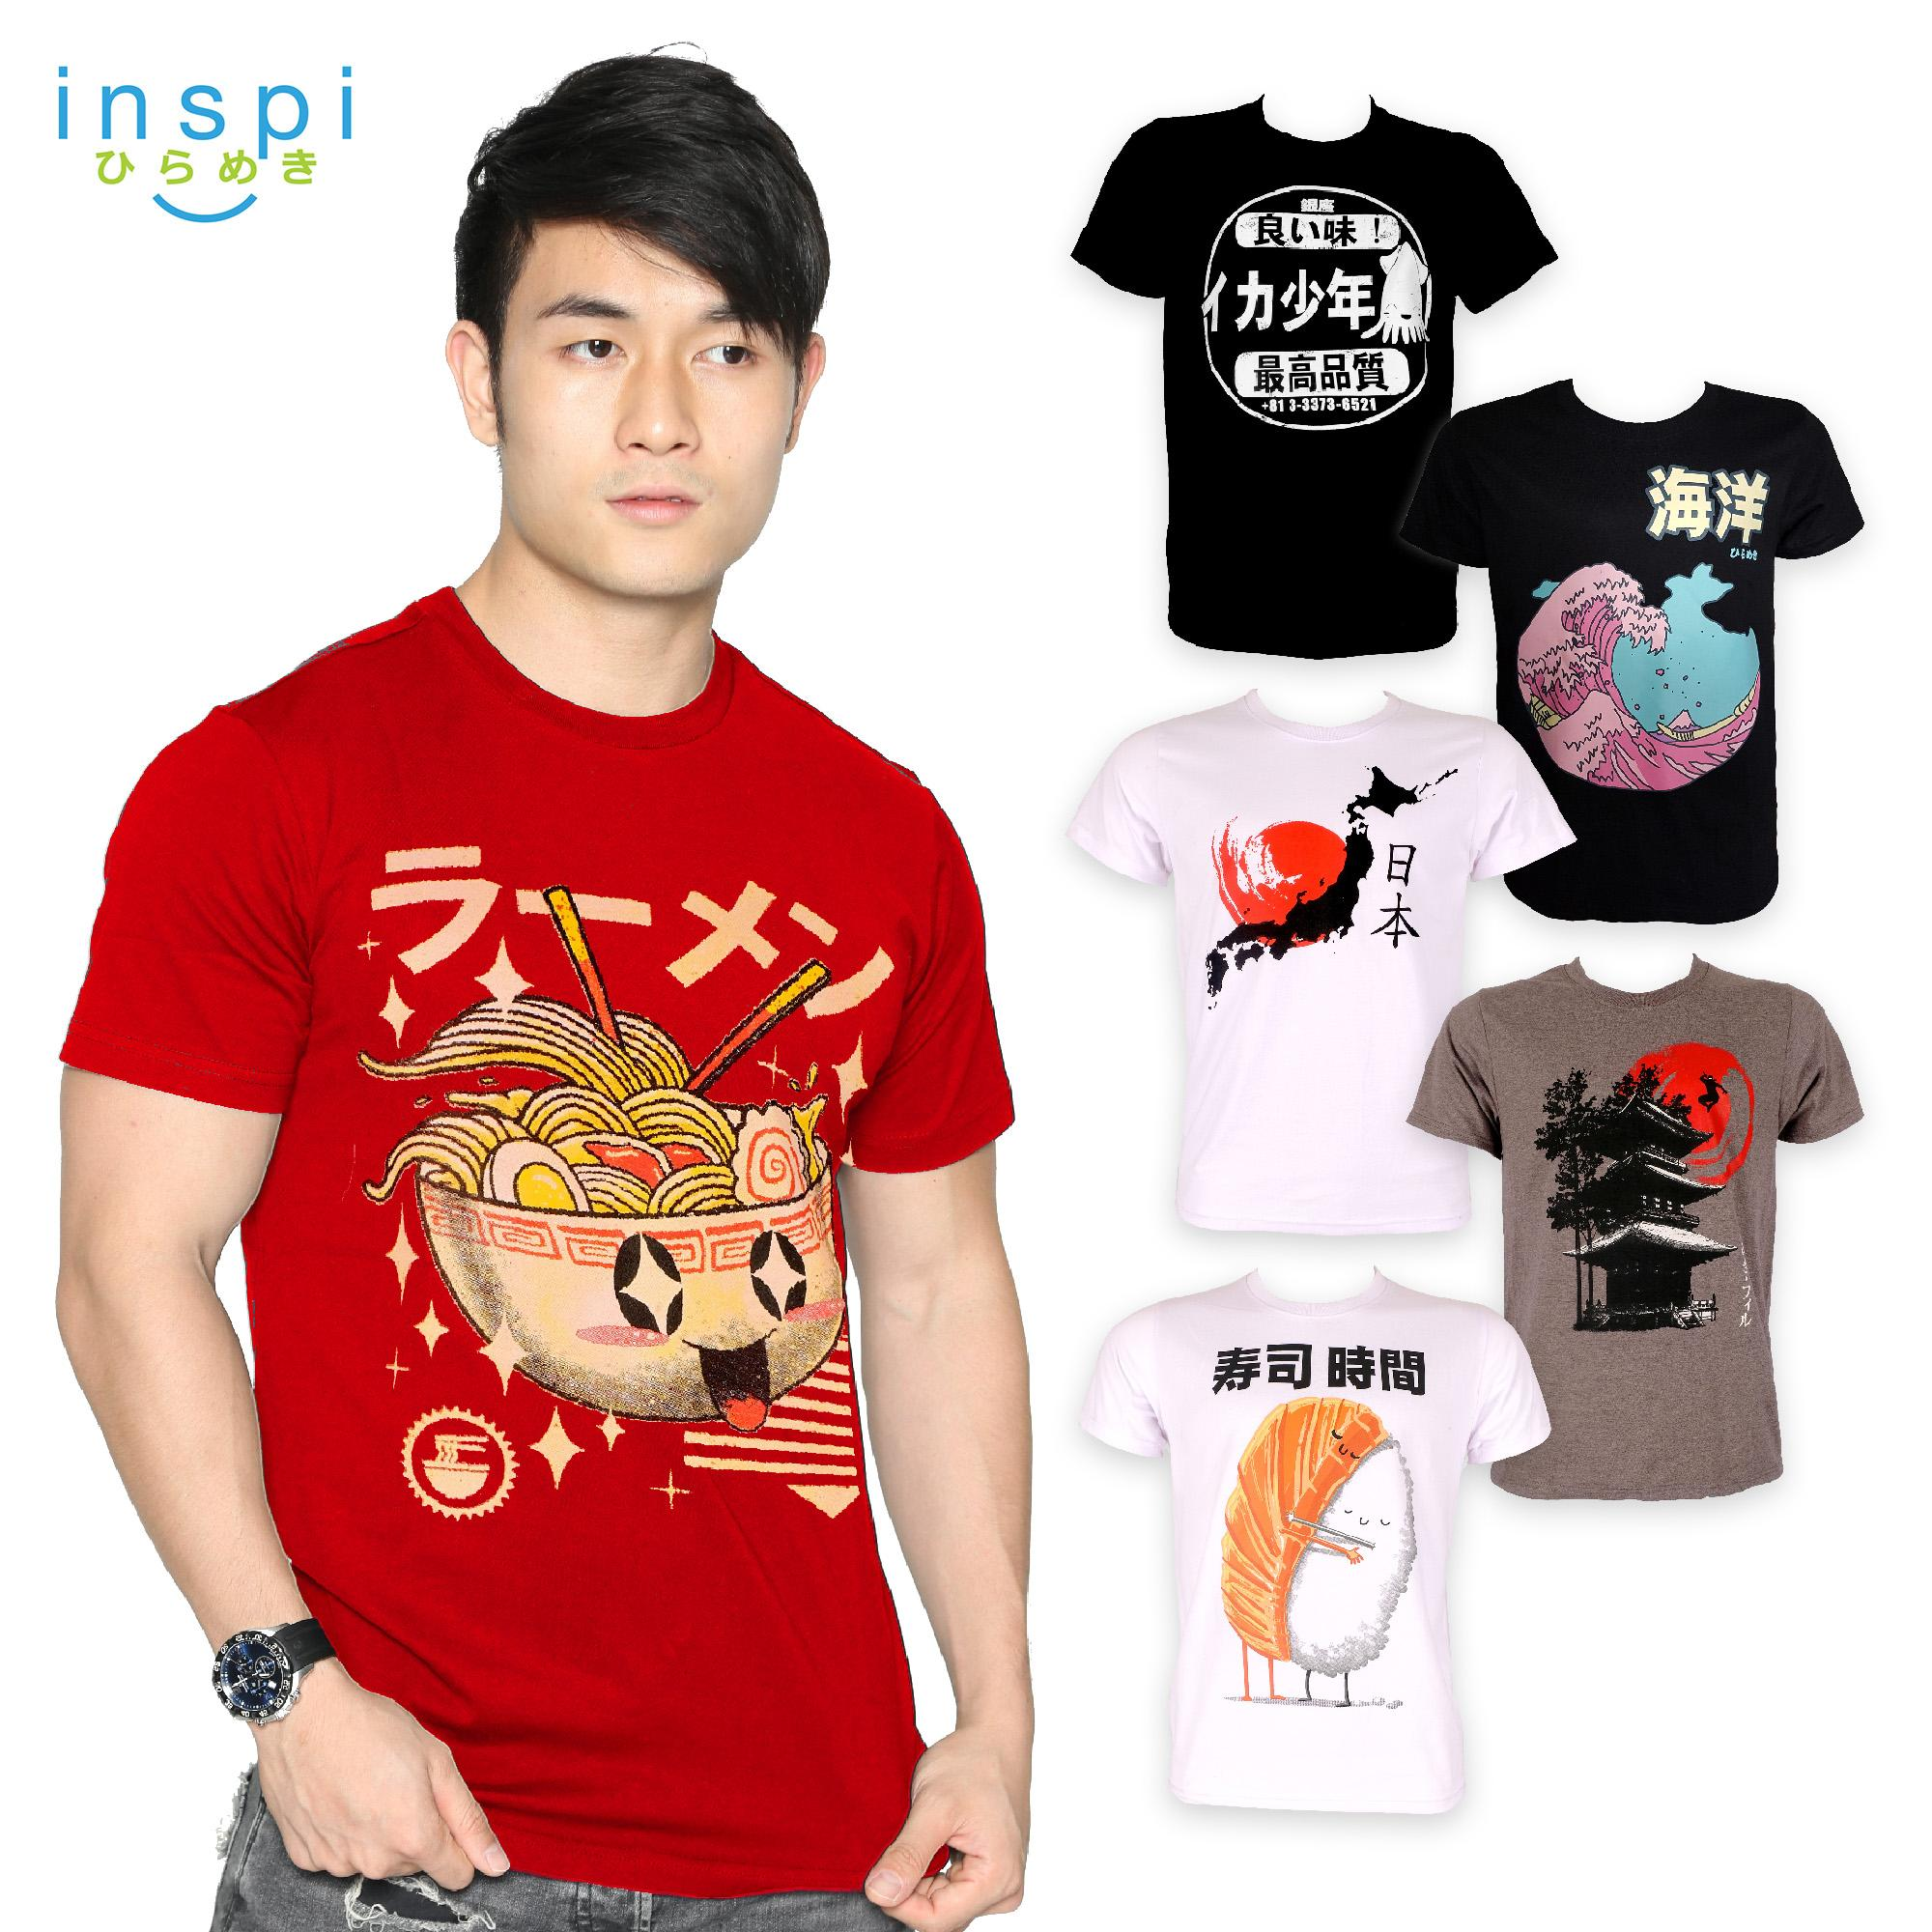 48947fdb69ac INSPI Tees Nippon Collection tshirt printed graphic tee Mens t shirt shirts  for men tshirts sale